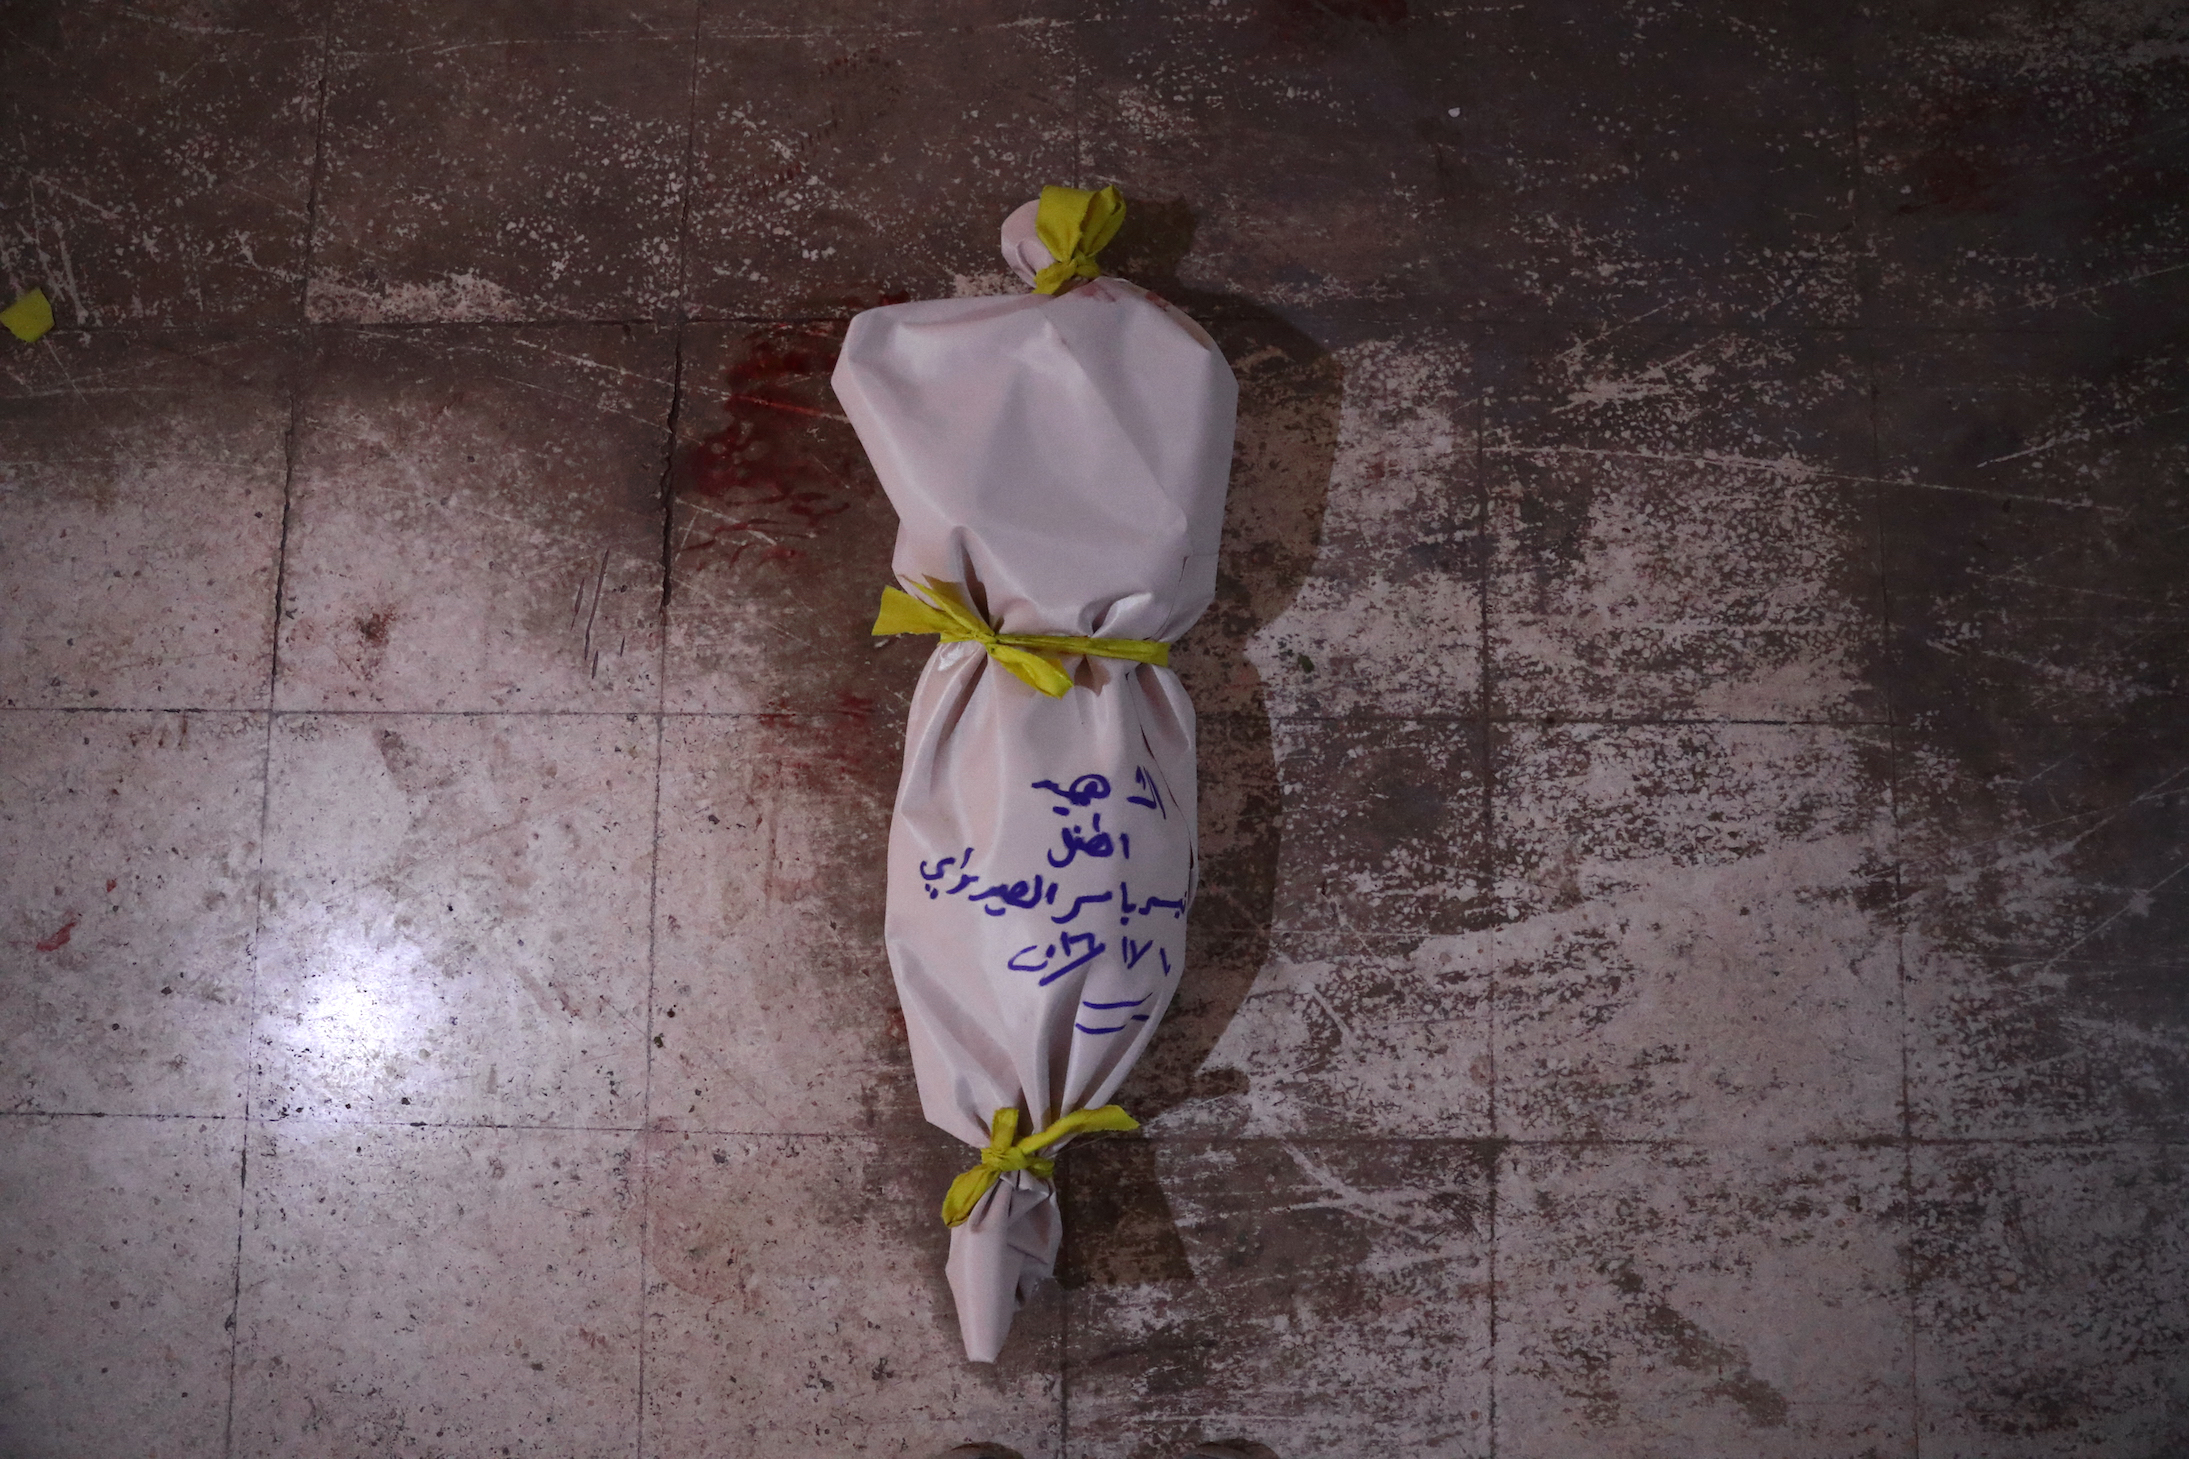 TOPSHOT - The body of a victim lies on the floor at a make-shift morgue following an airstrike in the rebel-held town of Douma, on the eastern outskirts of the capital Damascus, on November 10, 2016.At least 11 people including four children were killed on November 10 in air strikes on rebel-held areas near the Syrian capital, with one strike on the besieged town of Douma killing eight people including three children, according to the Syrian Observatory for Human Rights. / AFP / Abd Doumany (Photo credit should read ABD DOUMANY/AFP/Getty Images)